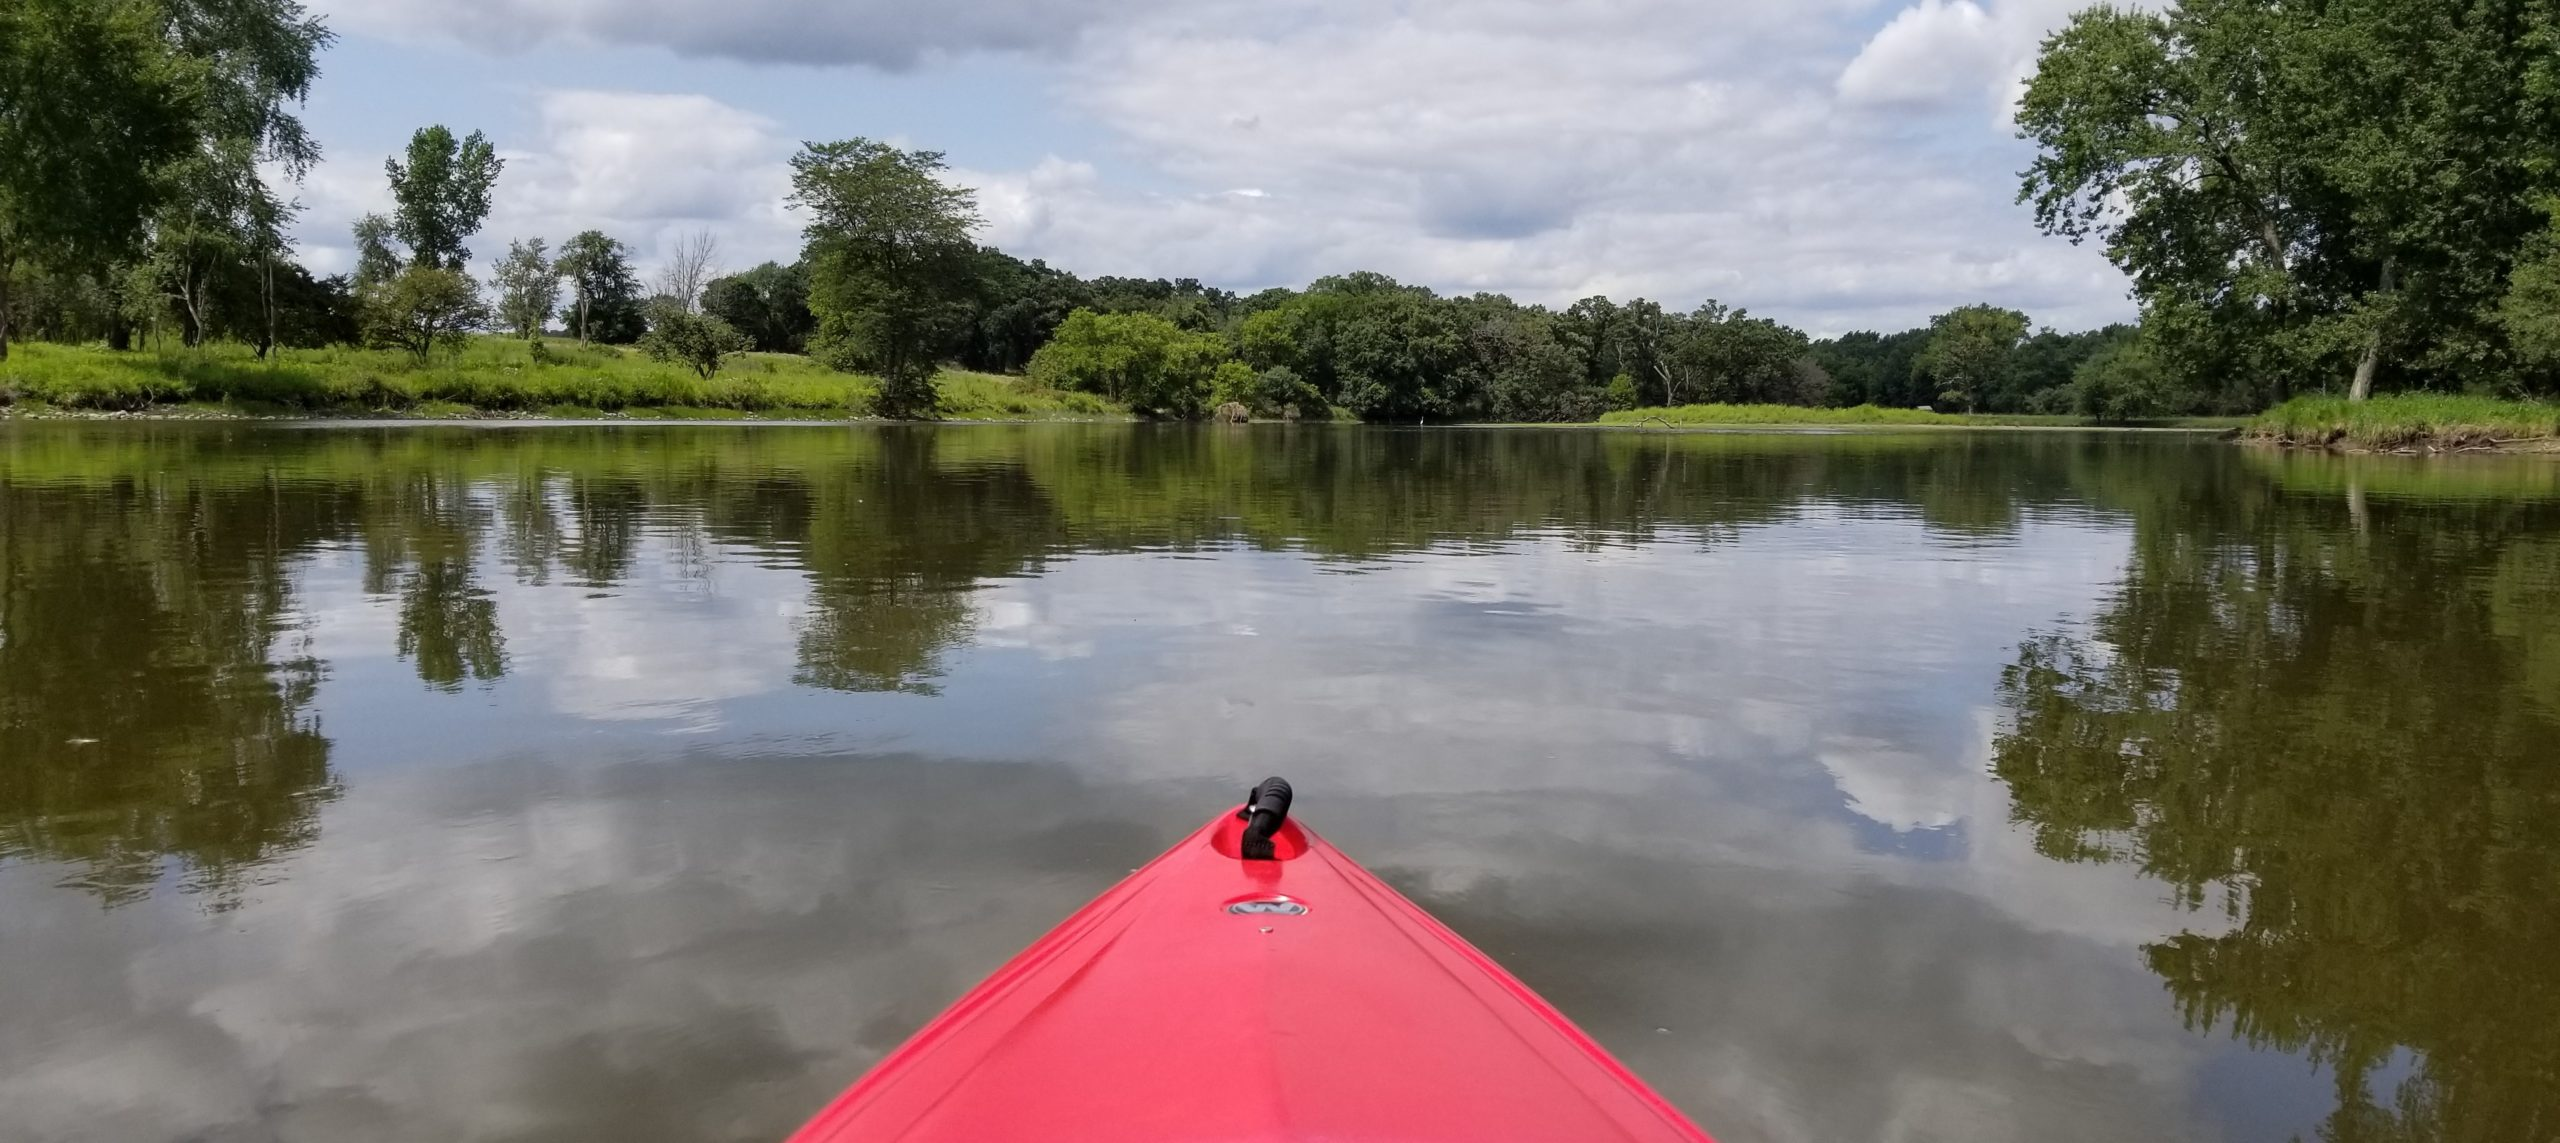 What Is A Leading Cause Of Death For Paddlers In Small Crafts Such As Canoes, Kayaks, And Rafts?